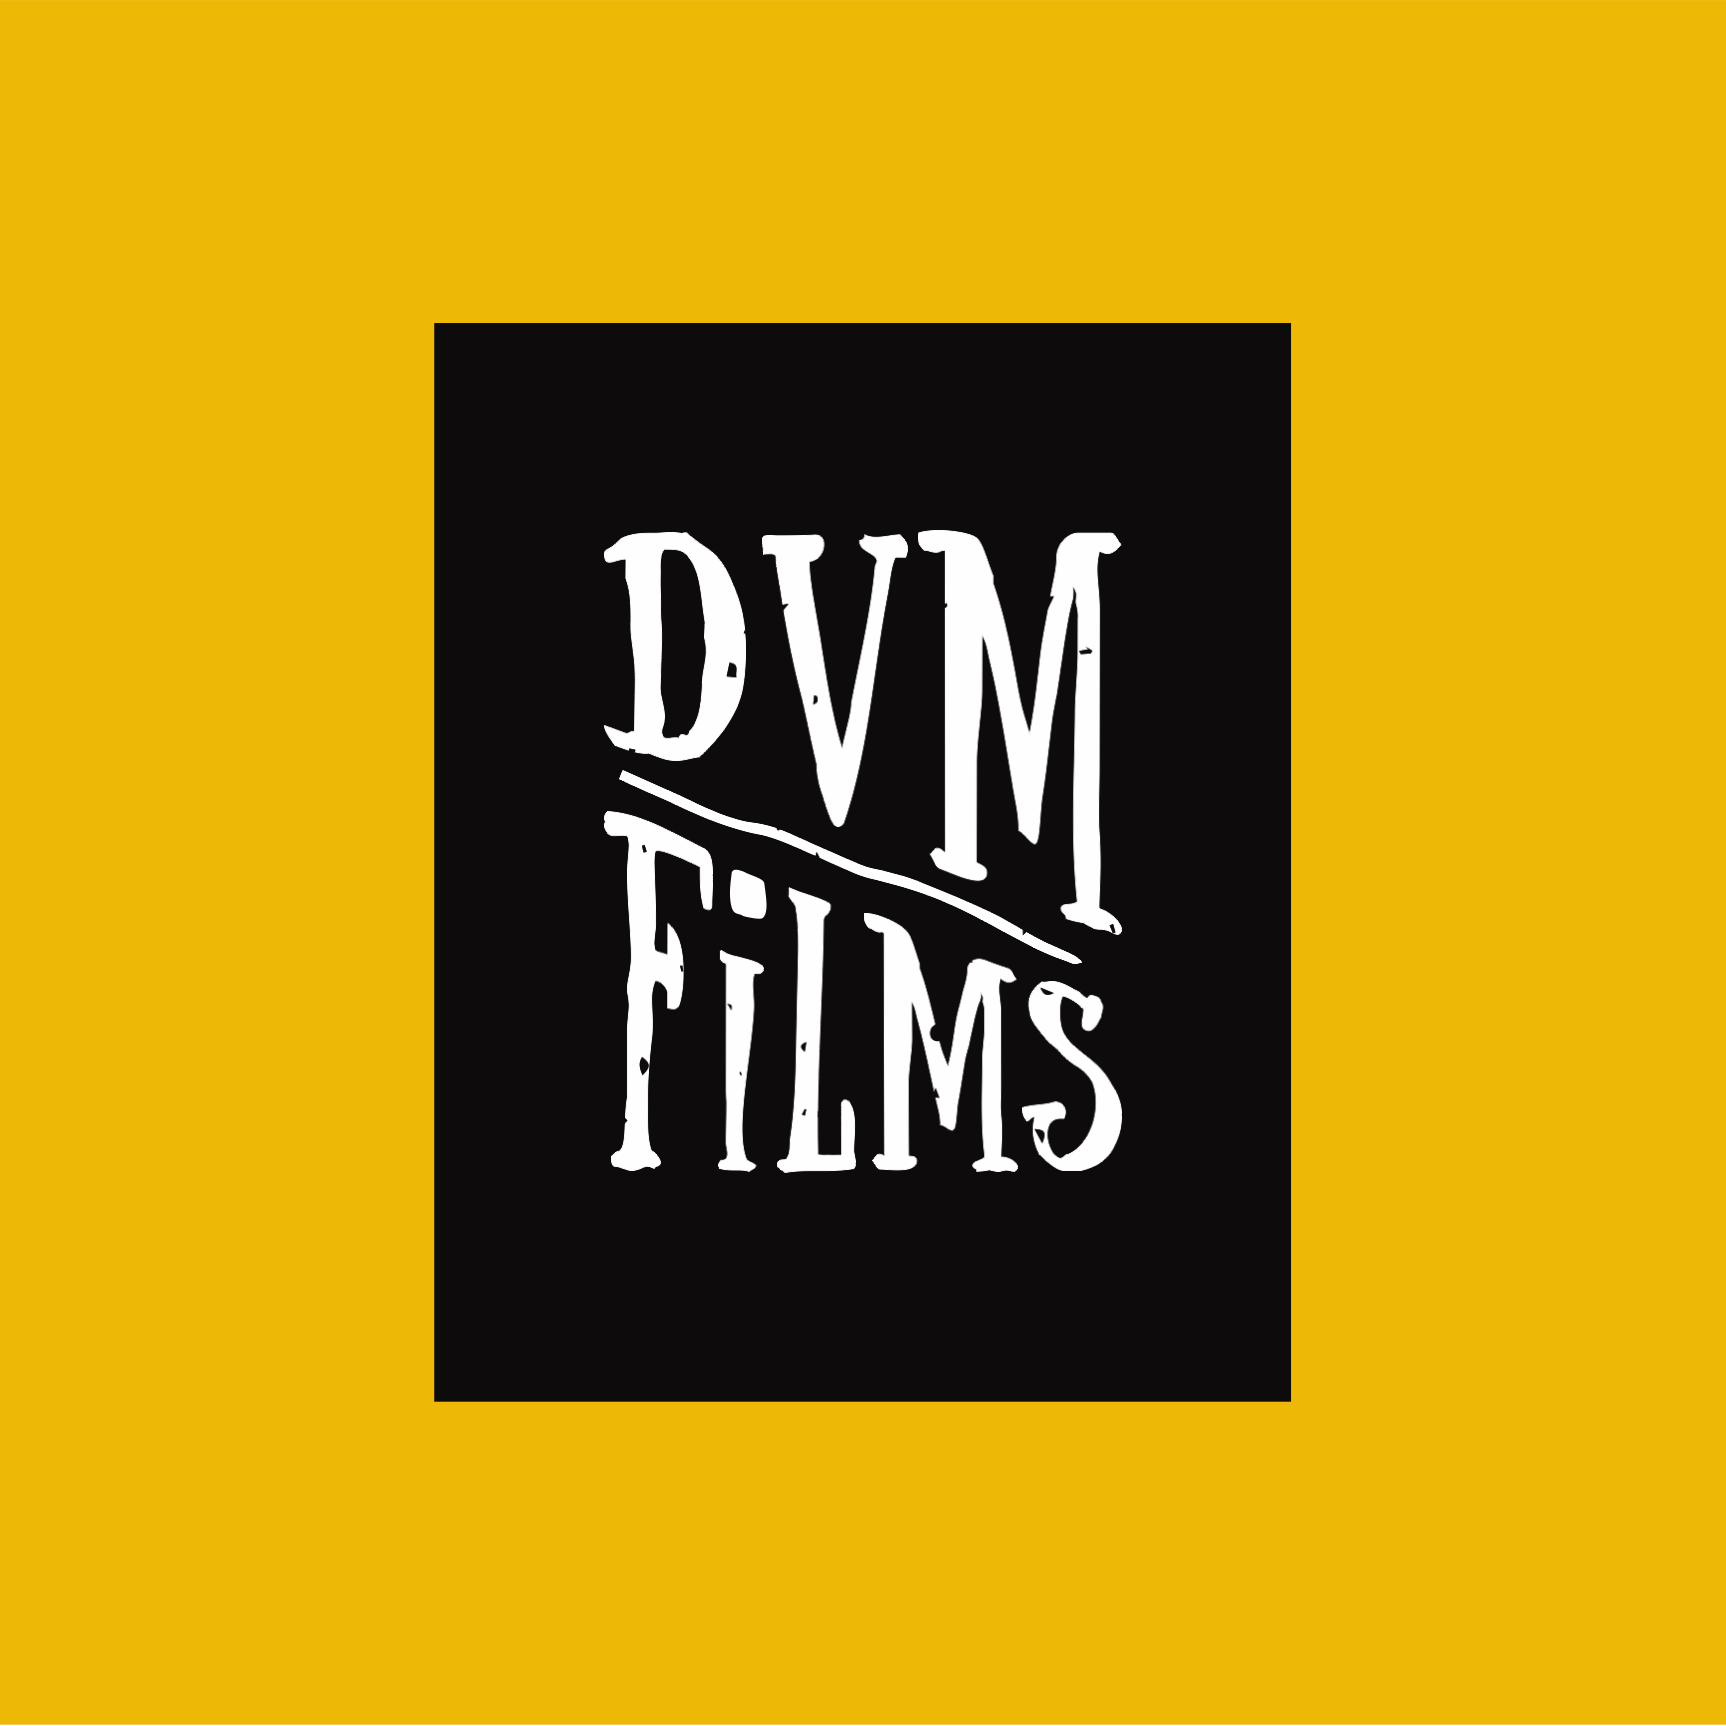 dvm films profile picture